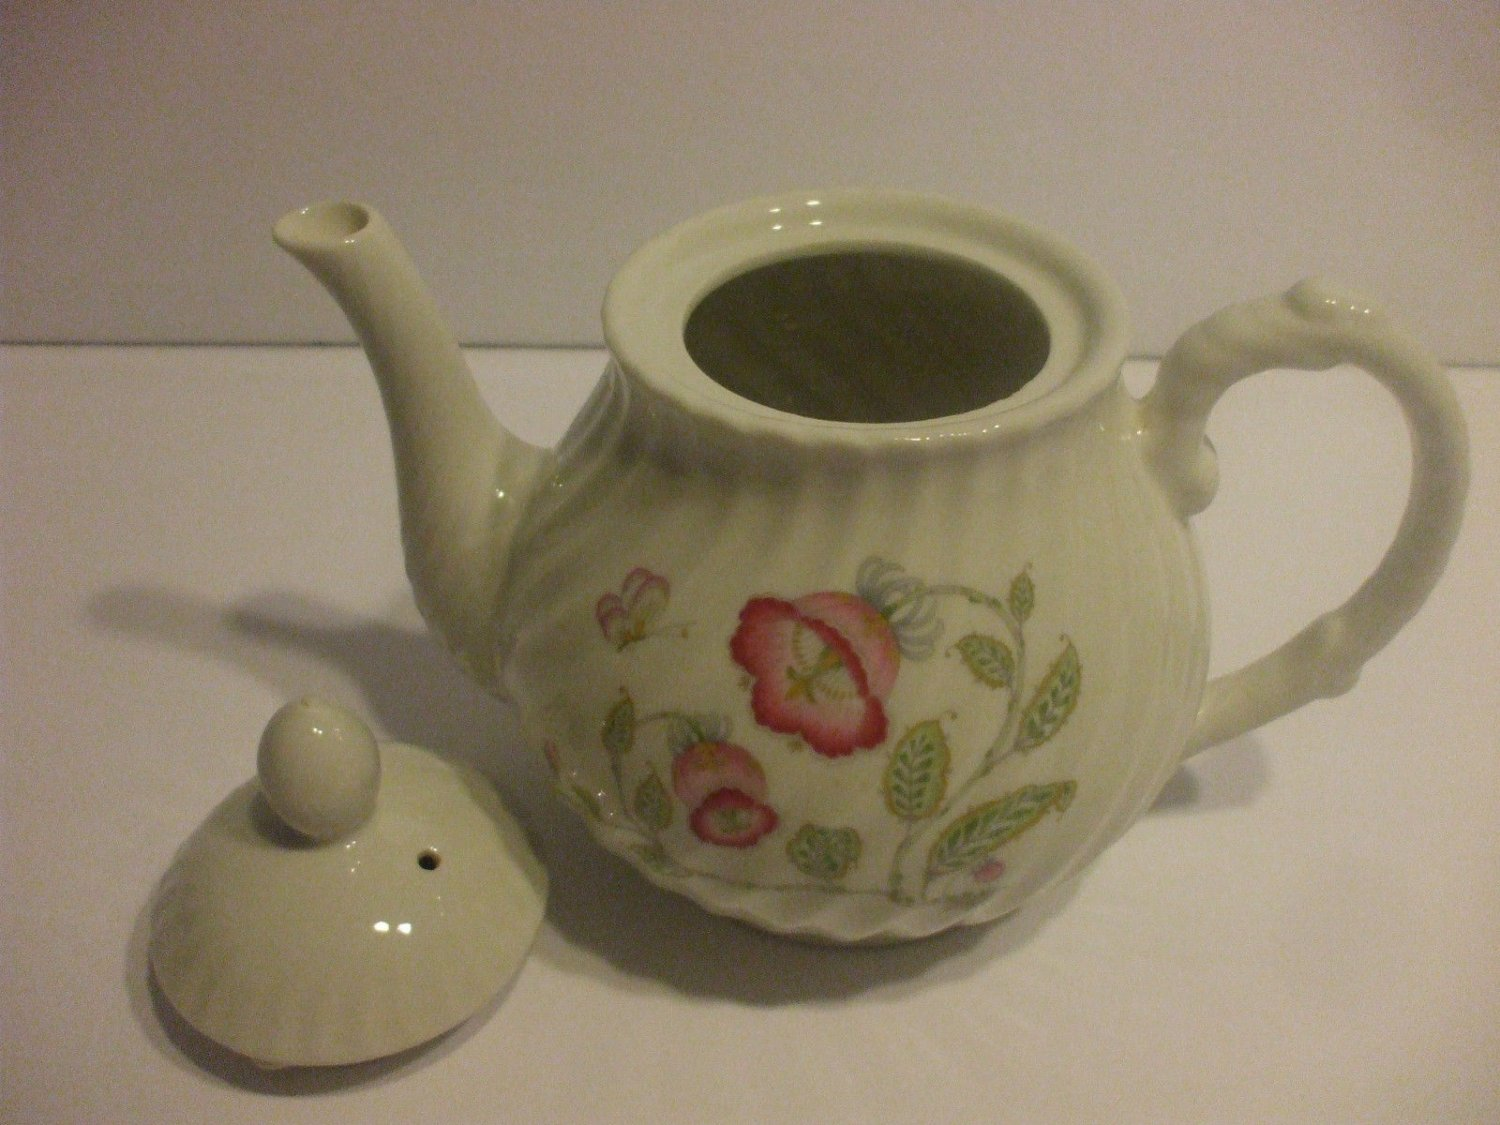 White-Porcelain-Teapot-with-Pink-Flowers-And-Butterflies-Holds-4-Cups-Liquid